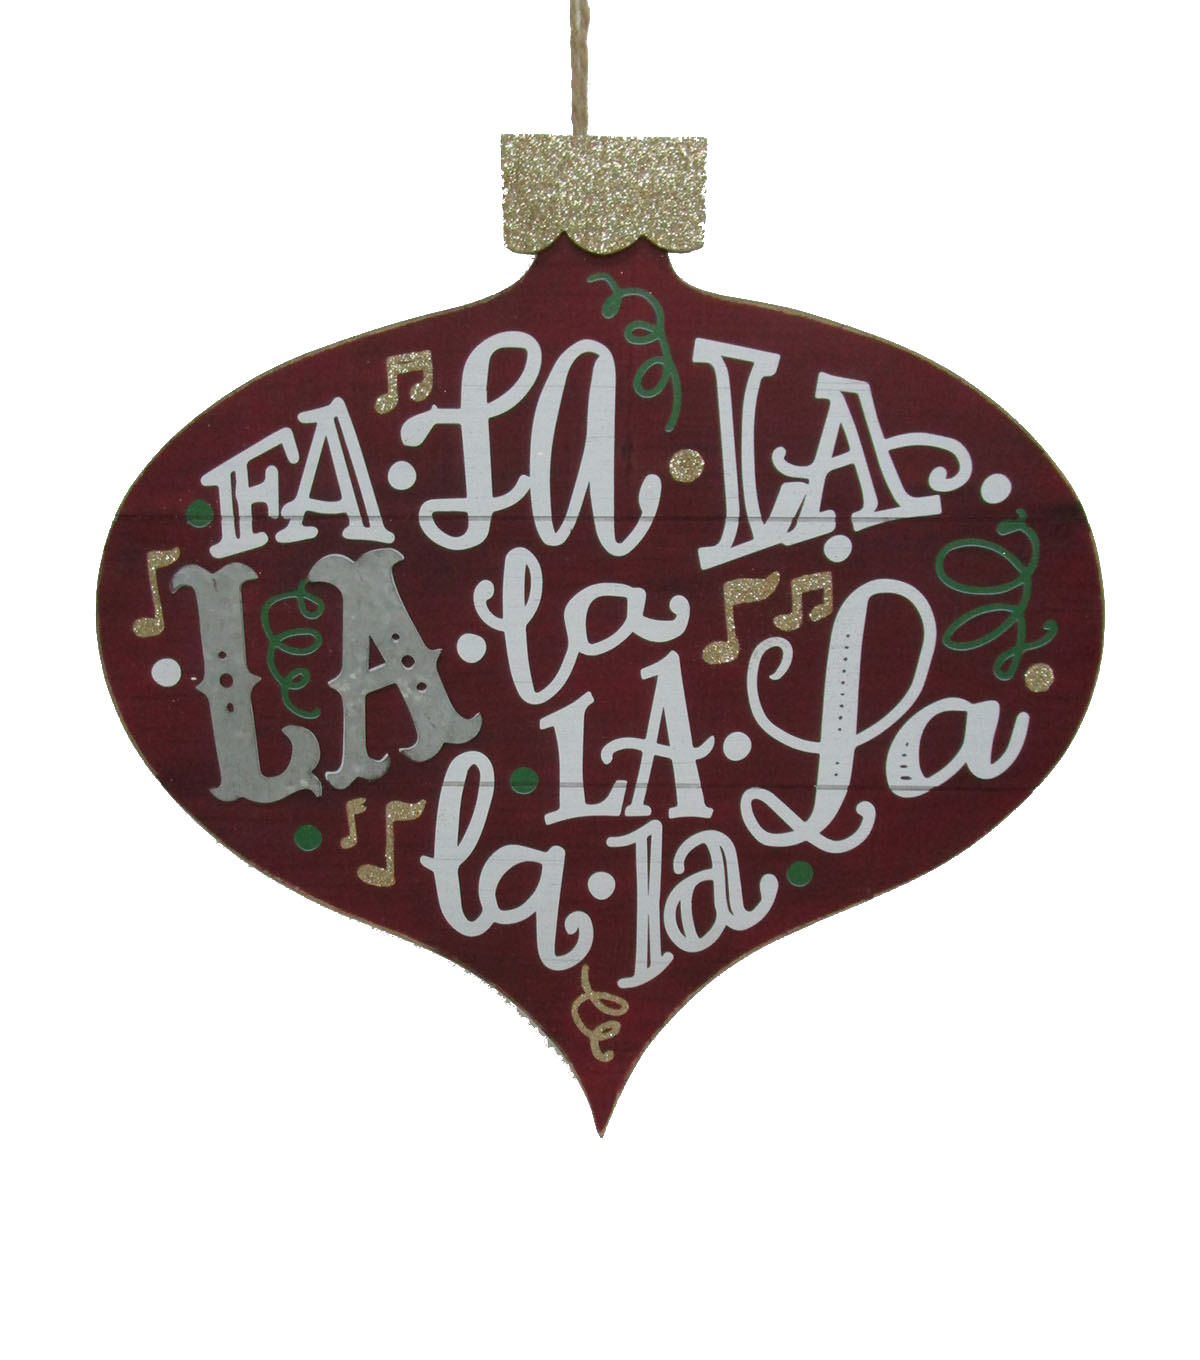 Maker\u0027s Holiday Christmas Ornament Shaped Wall Decor-Fa La